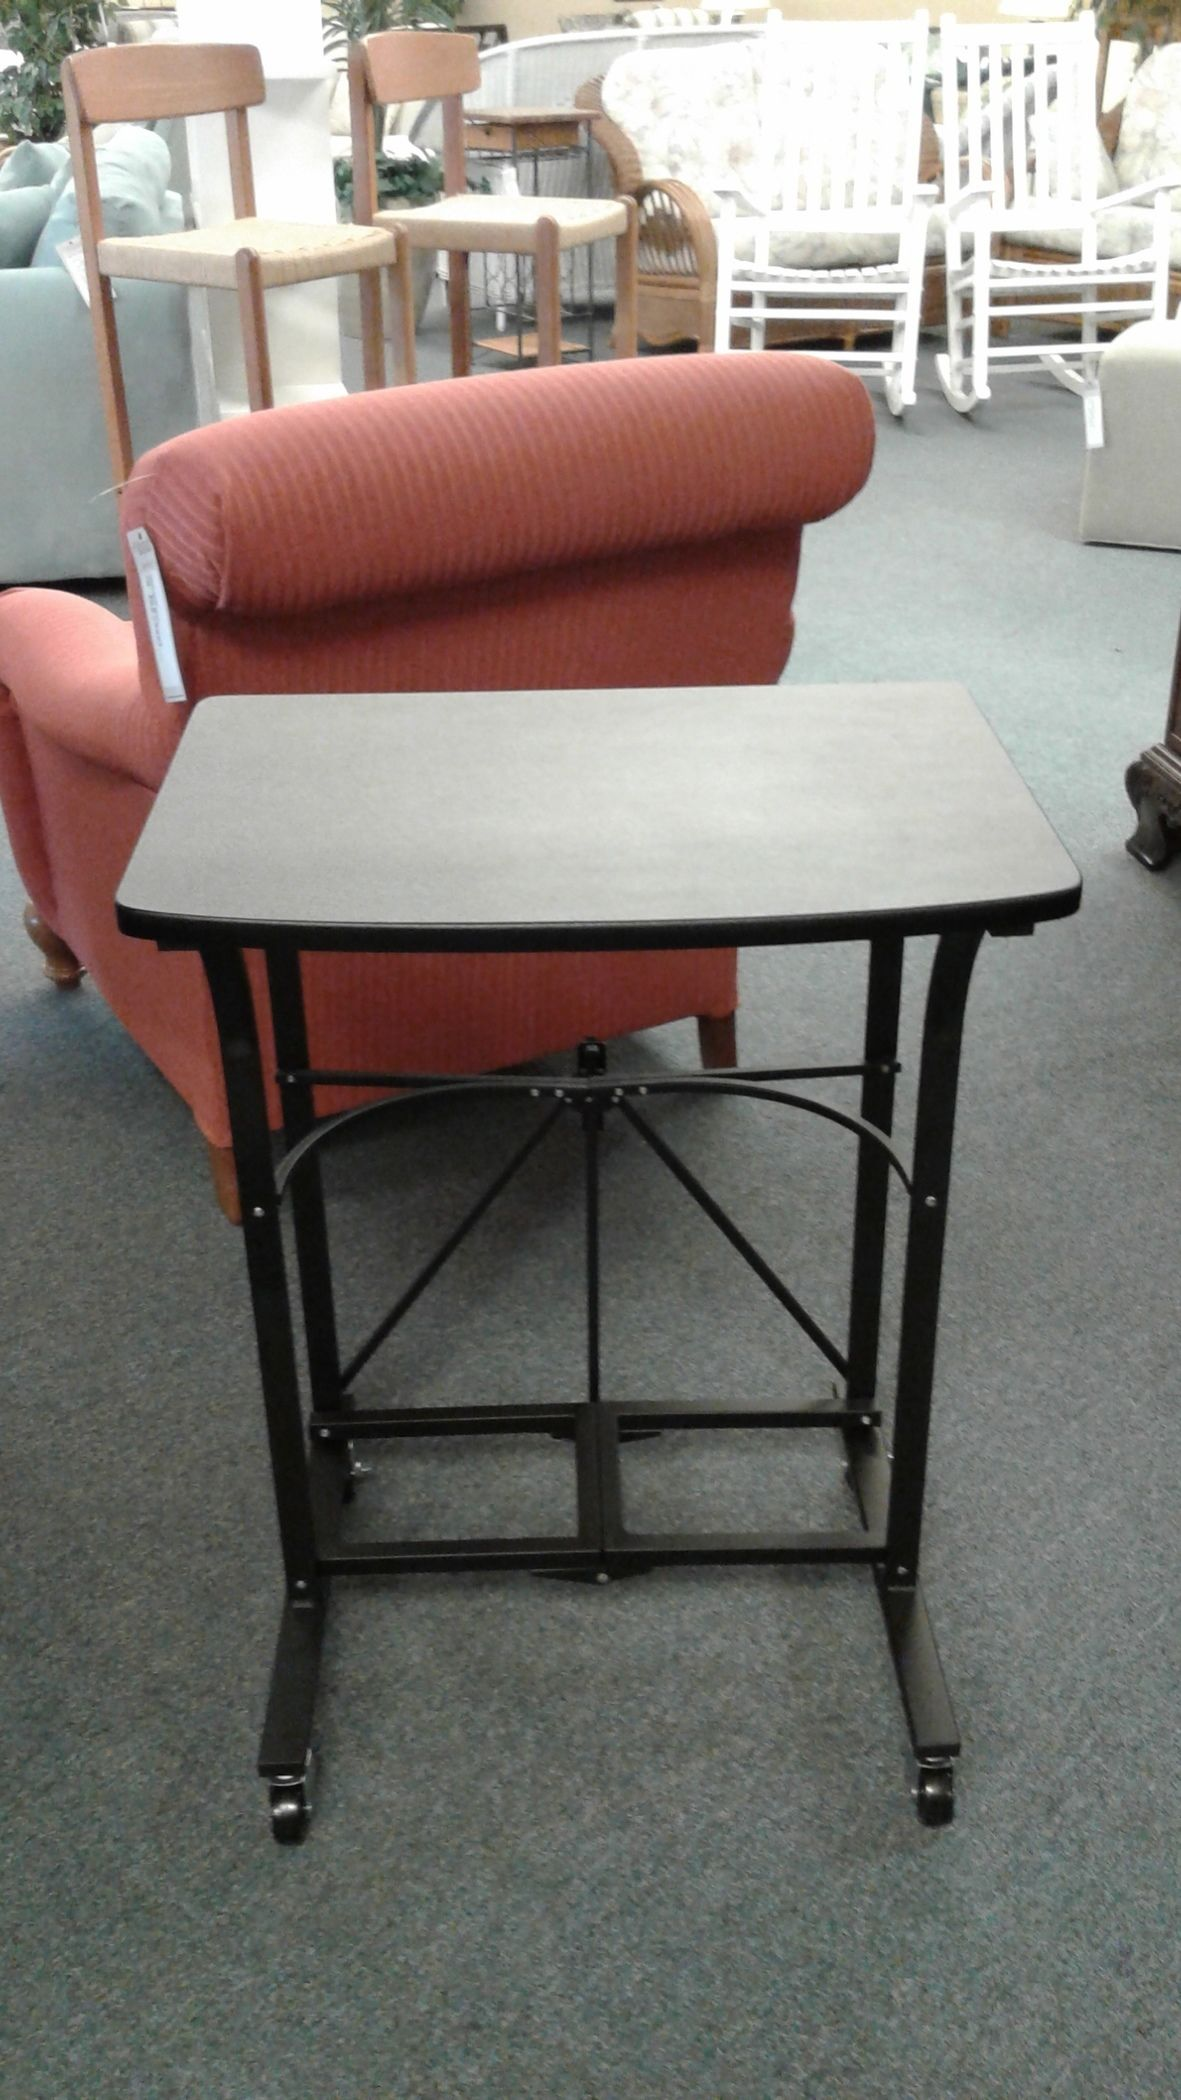 BLACK ORIGAMI FOLDING TABLE | Delmarva Furniture Consignment - photo#14